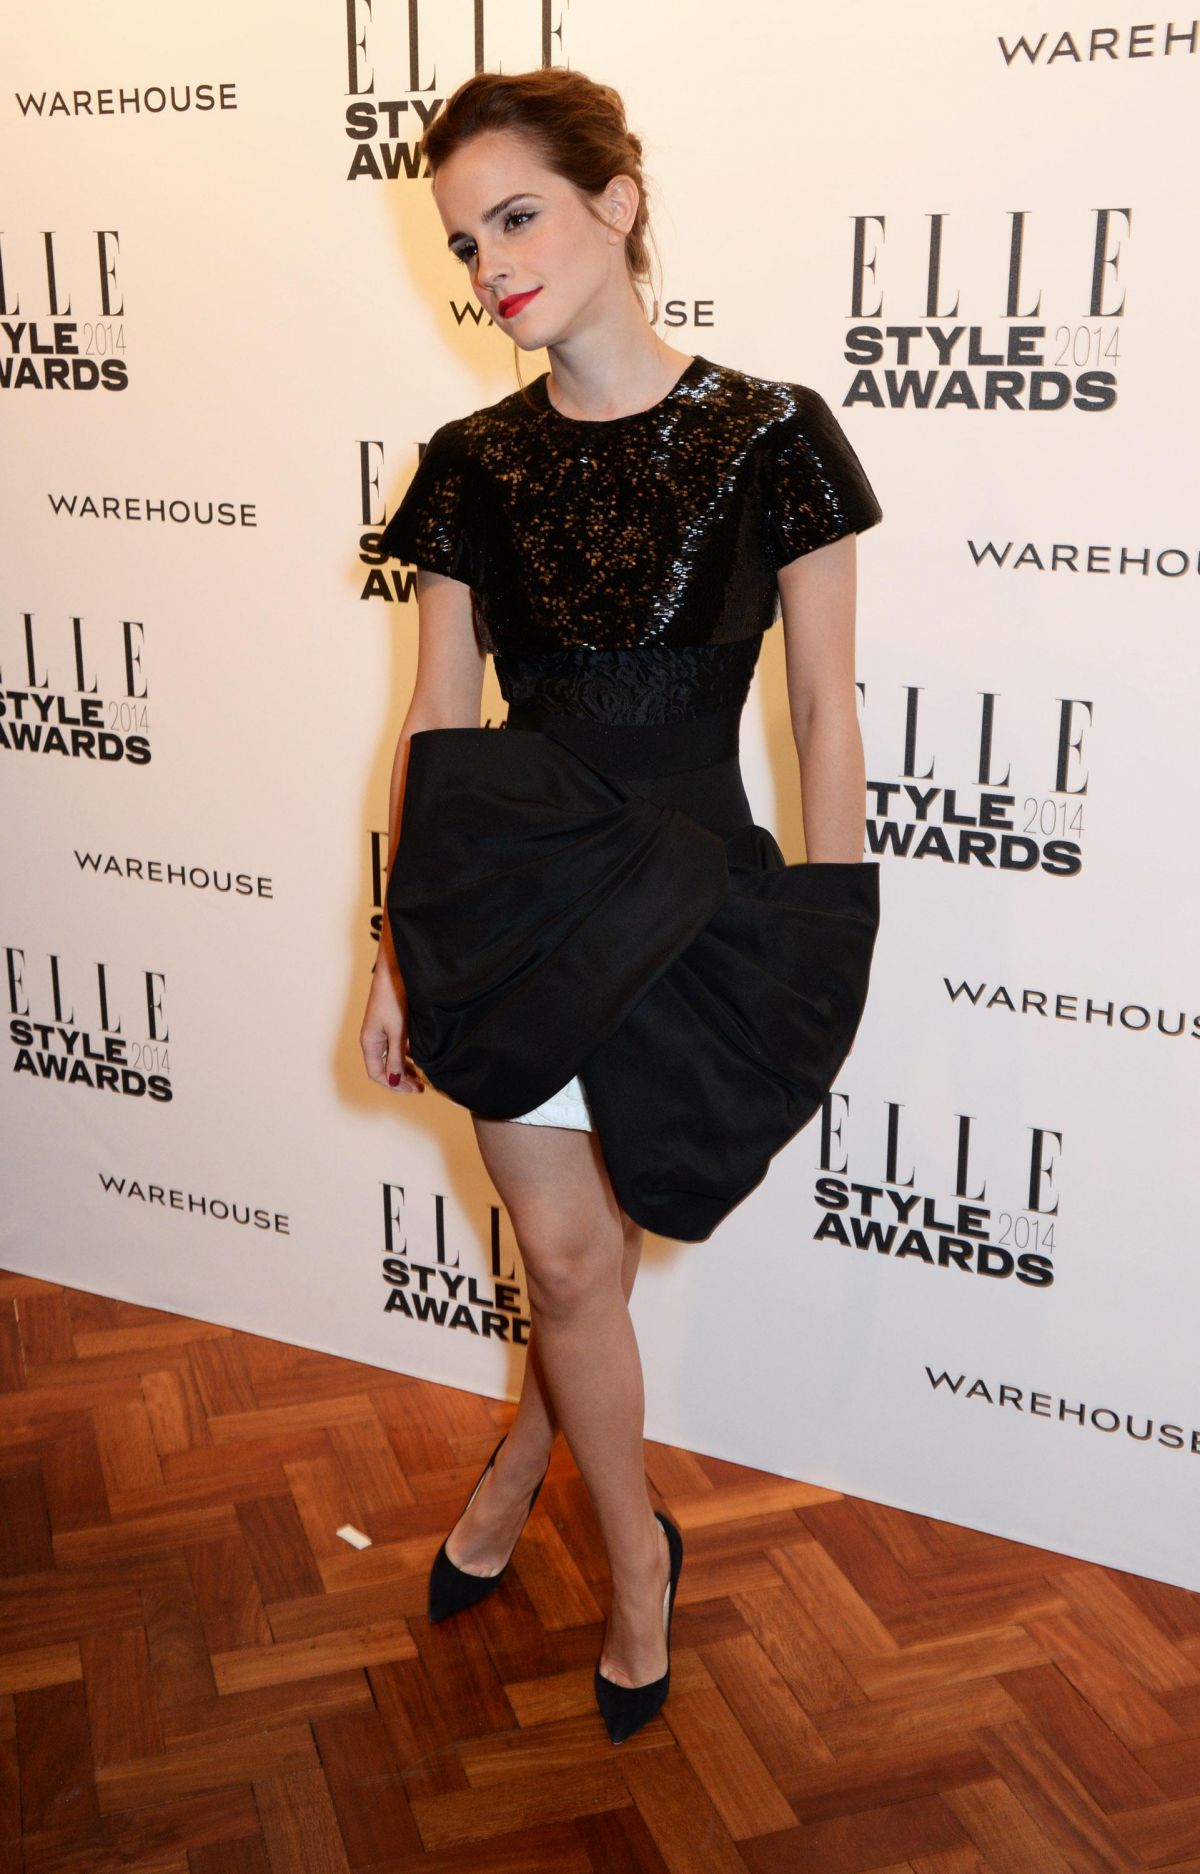 EMMA WATSON at Elle Style Awards 2014 in London